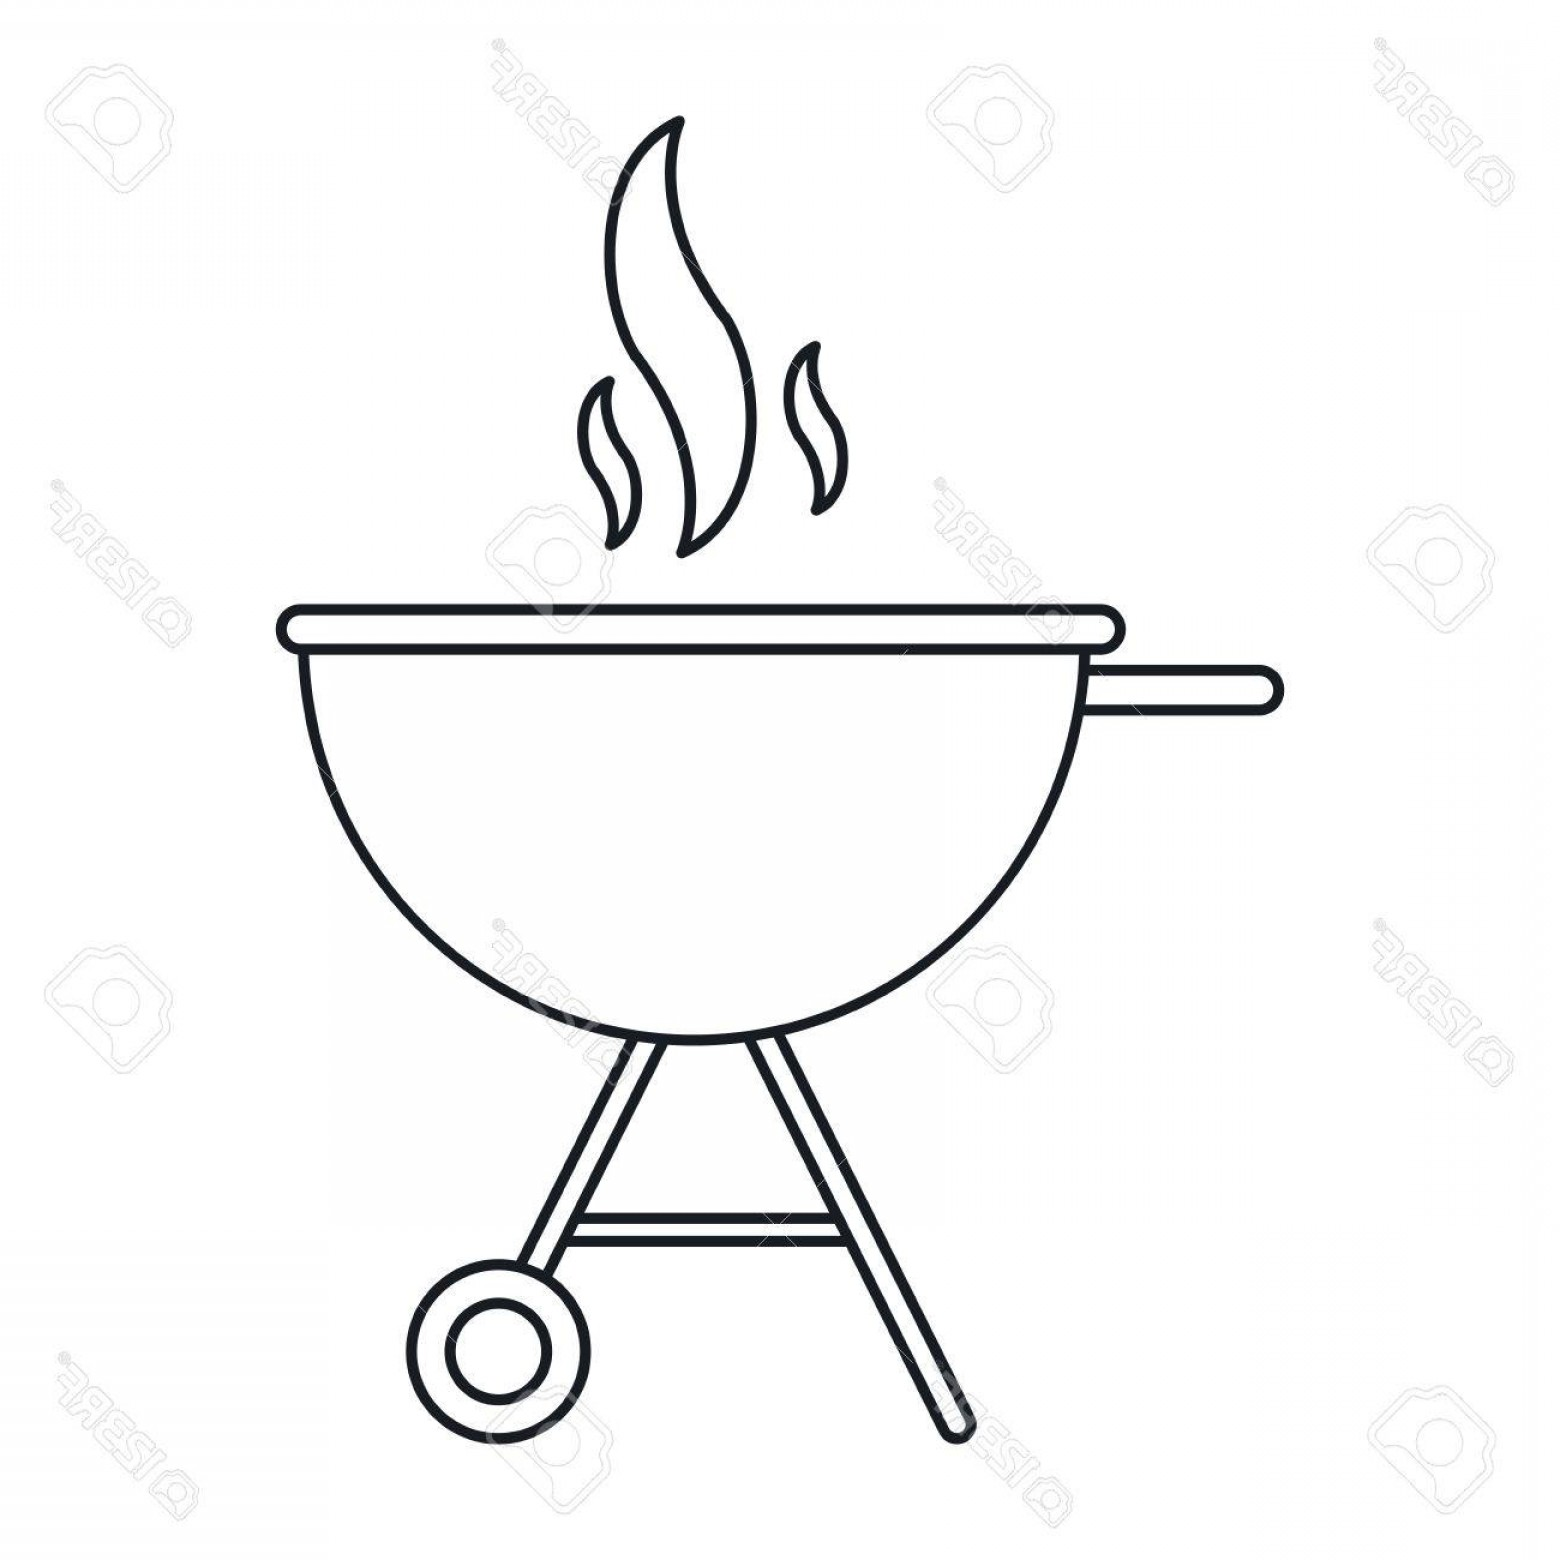 BBQ Grill Vector Black And White: Photostock Vector Bbq Grill Party American Football Outline Vector Illustration